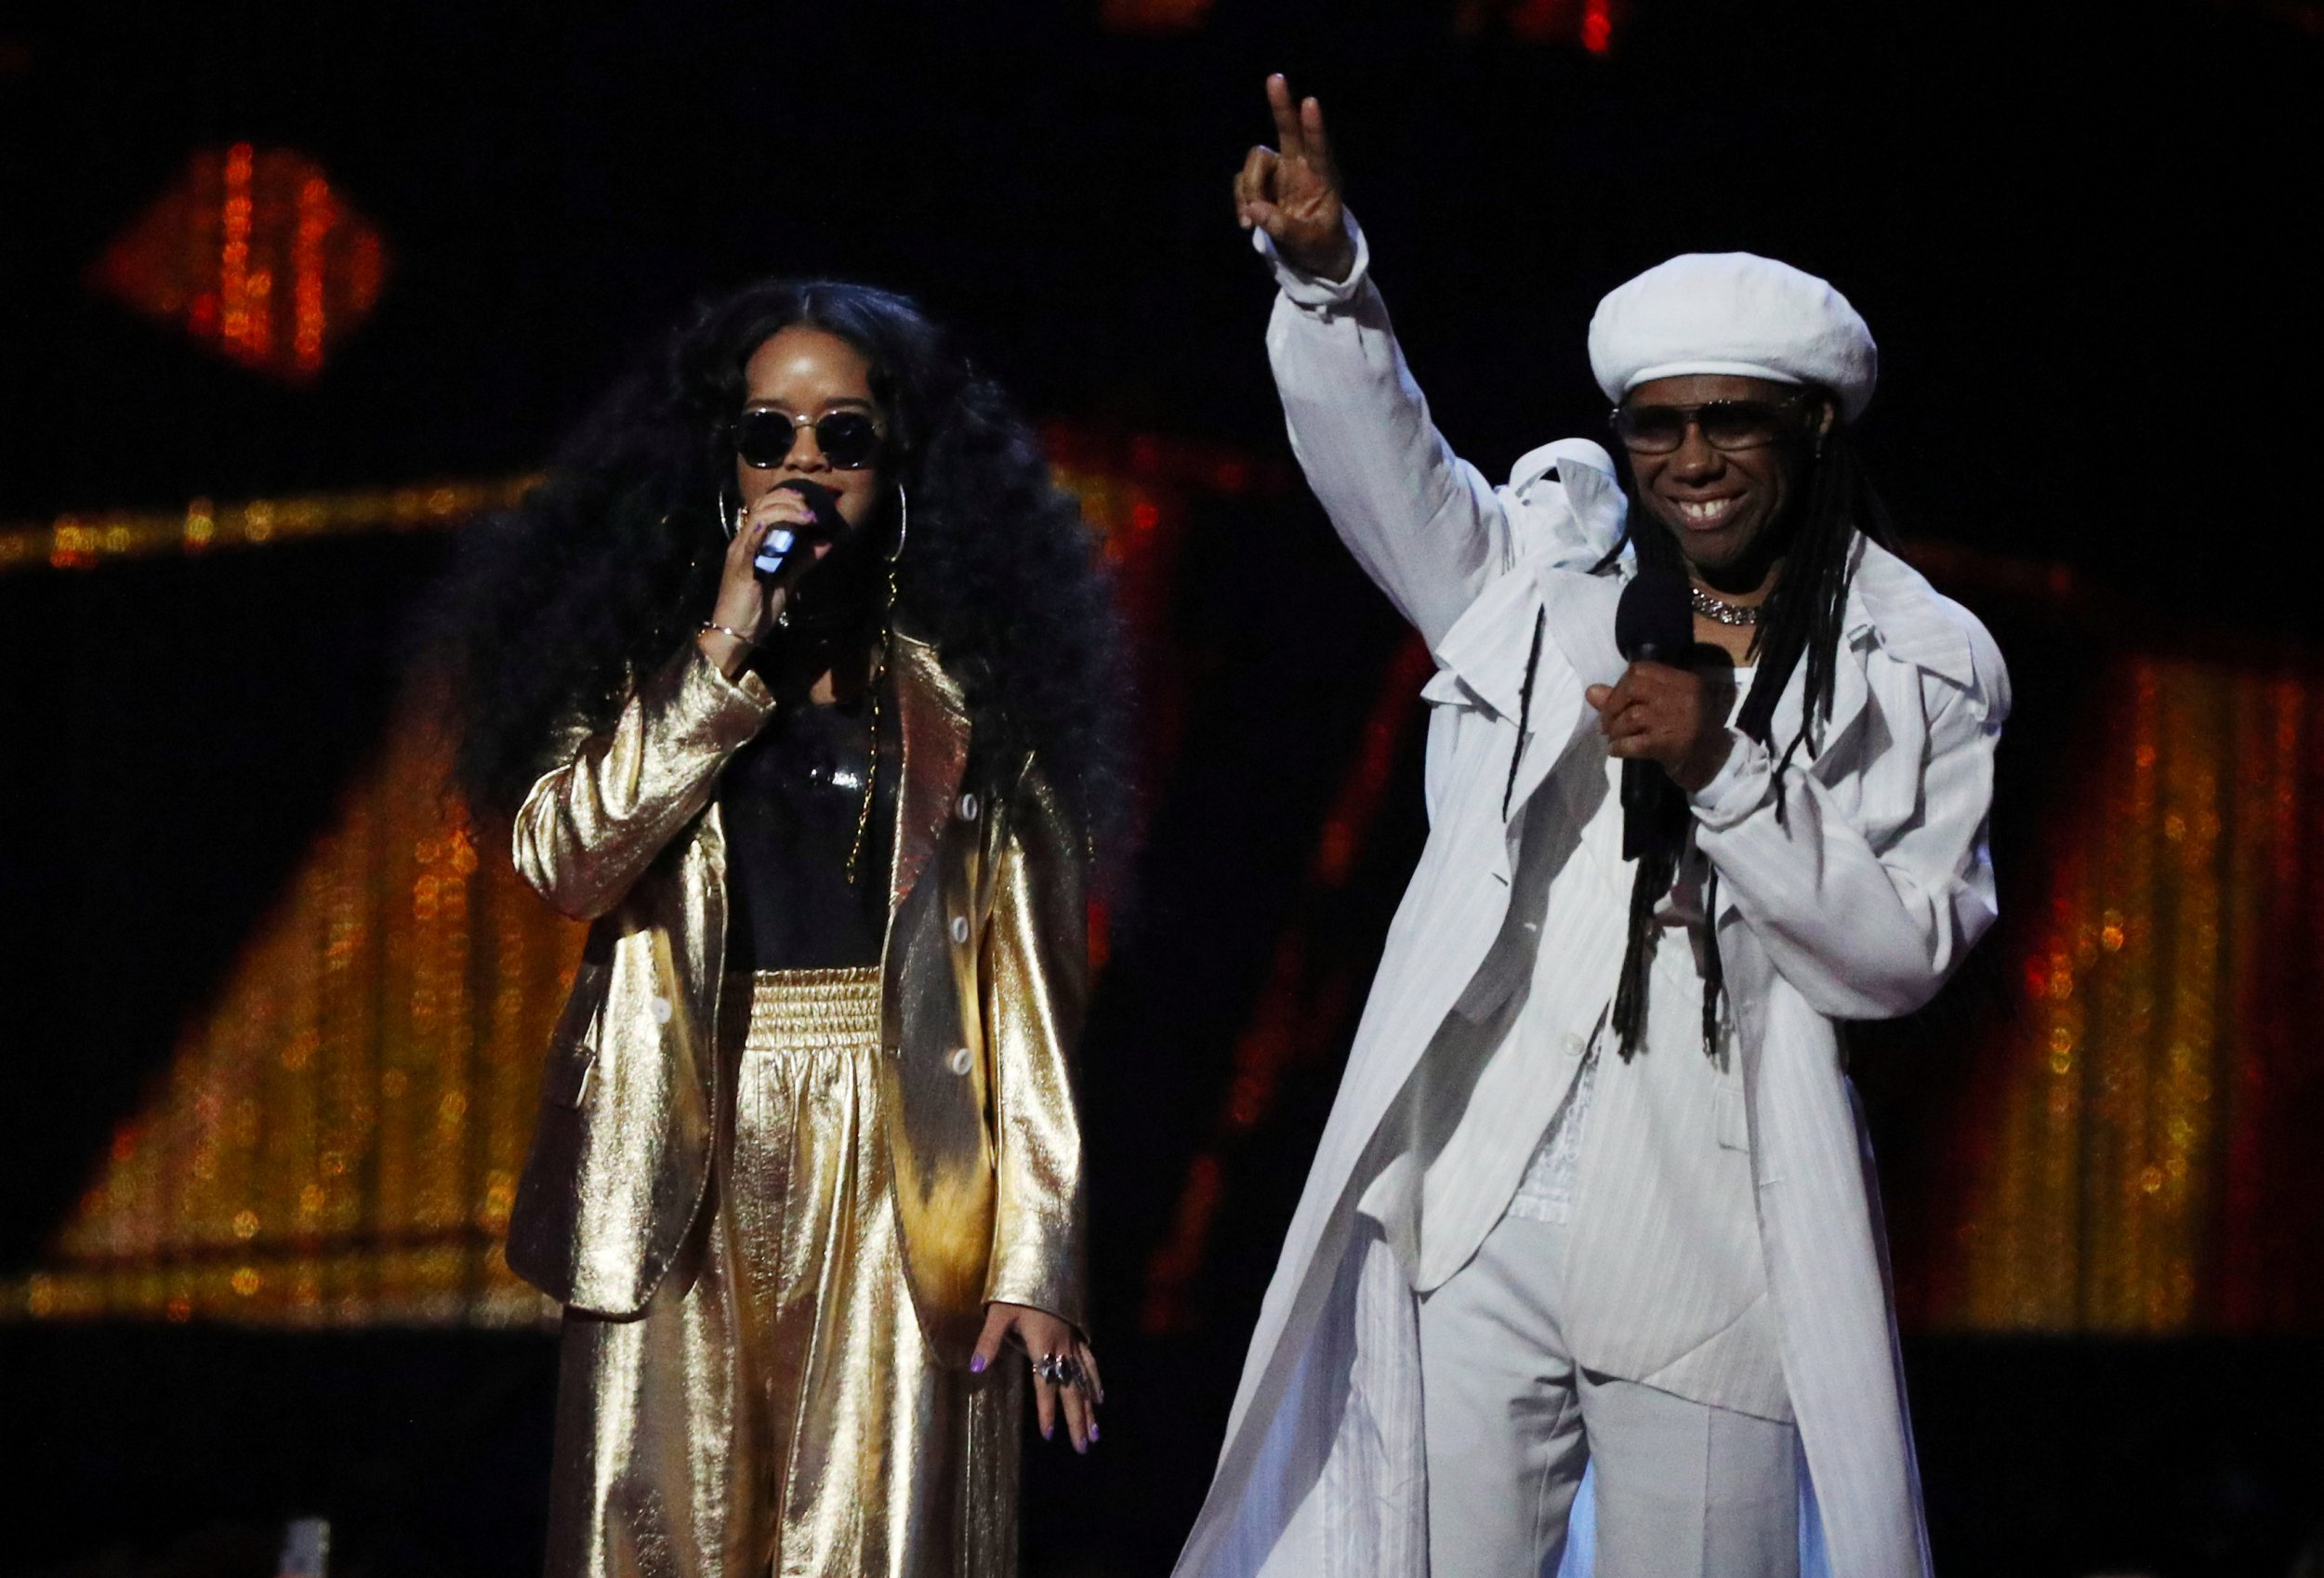 Nile Rodgers almost says 'breast' instead of 'best' in awkward slip up while presenting an award at the Brits